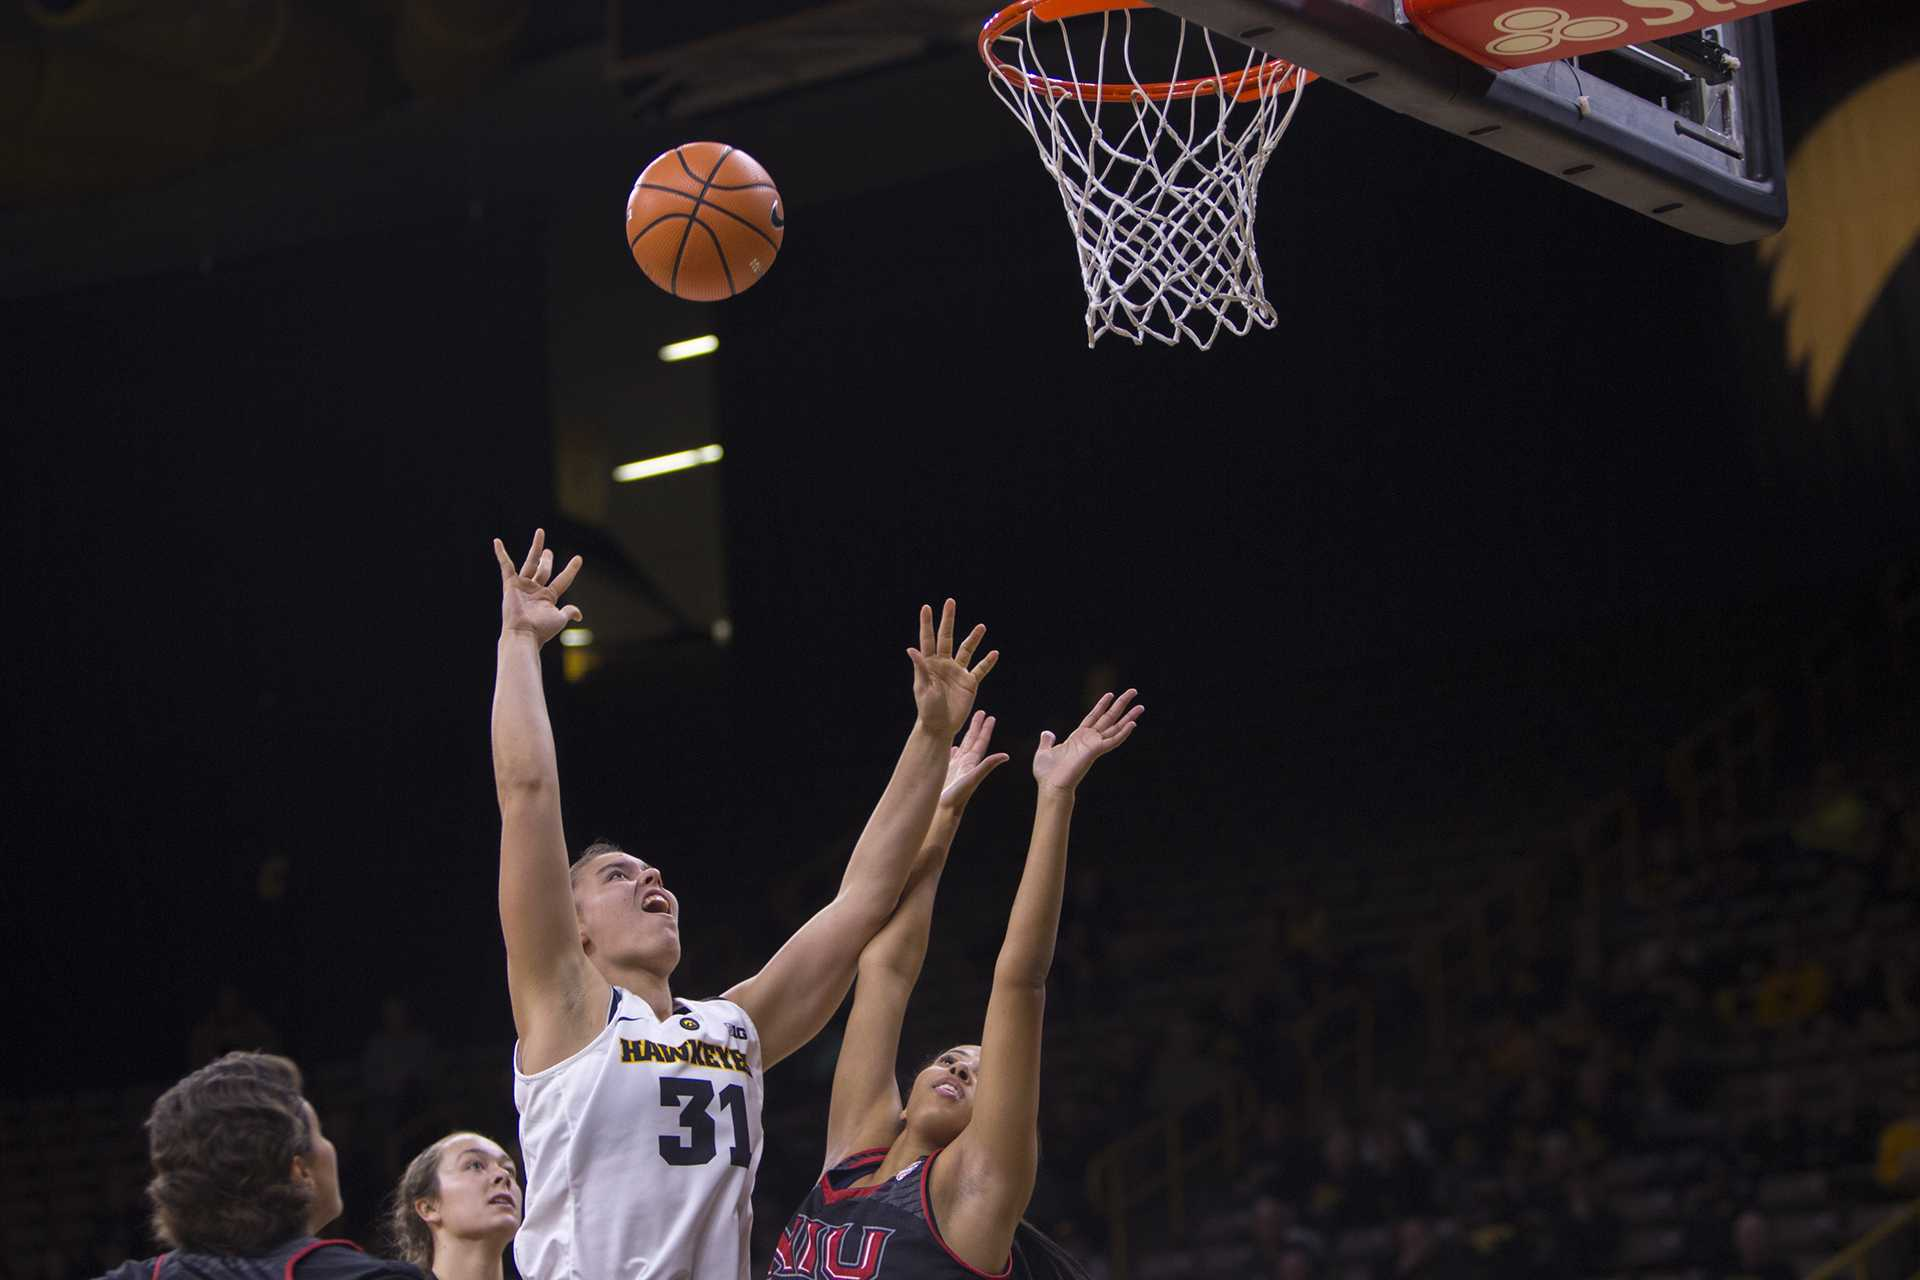 Iowa's Paula Valiño Ramos attempts a shot during the Iowa/Northern Illinois basketball game at Carver-Hawkeye Arena on Wednesday, Nov. 15, 2017. The Hawkeyes defeated the Huskies, 105-80. (Lily Smith/The Daily Iowan)